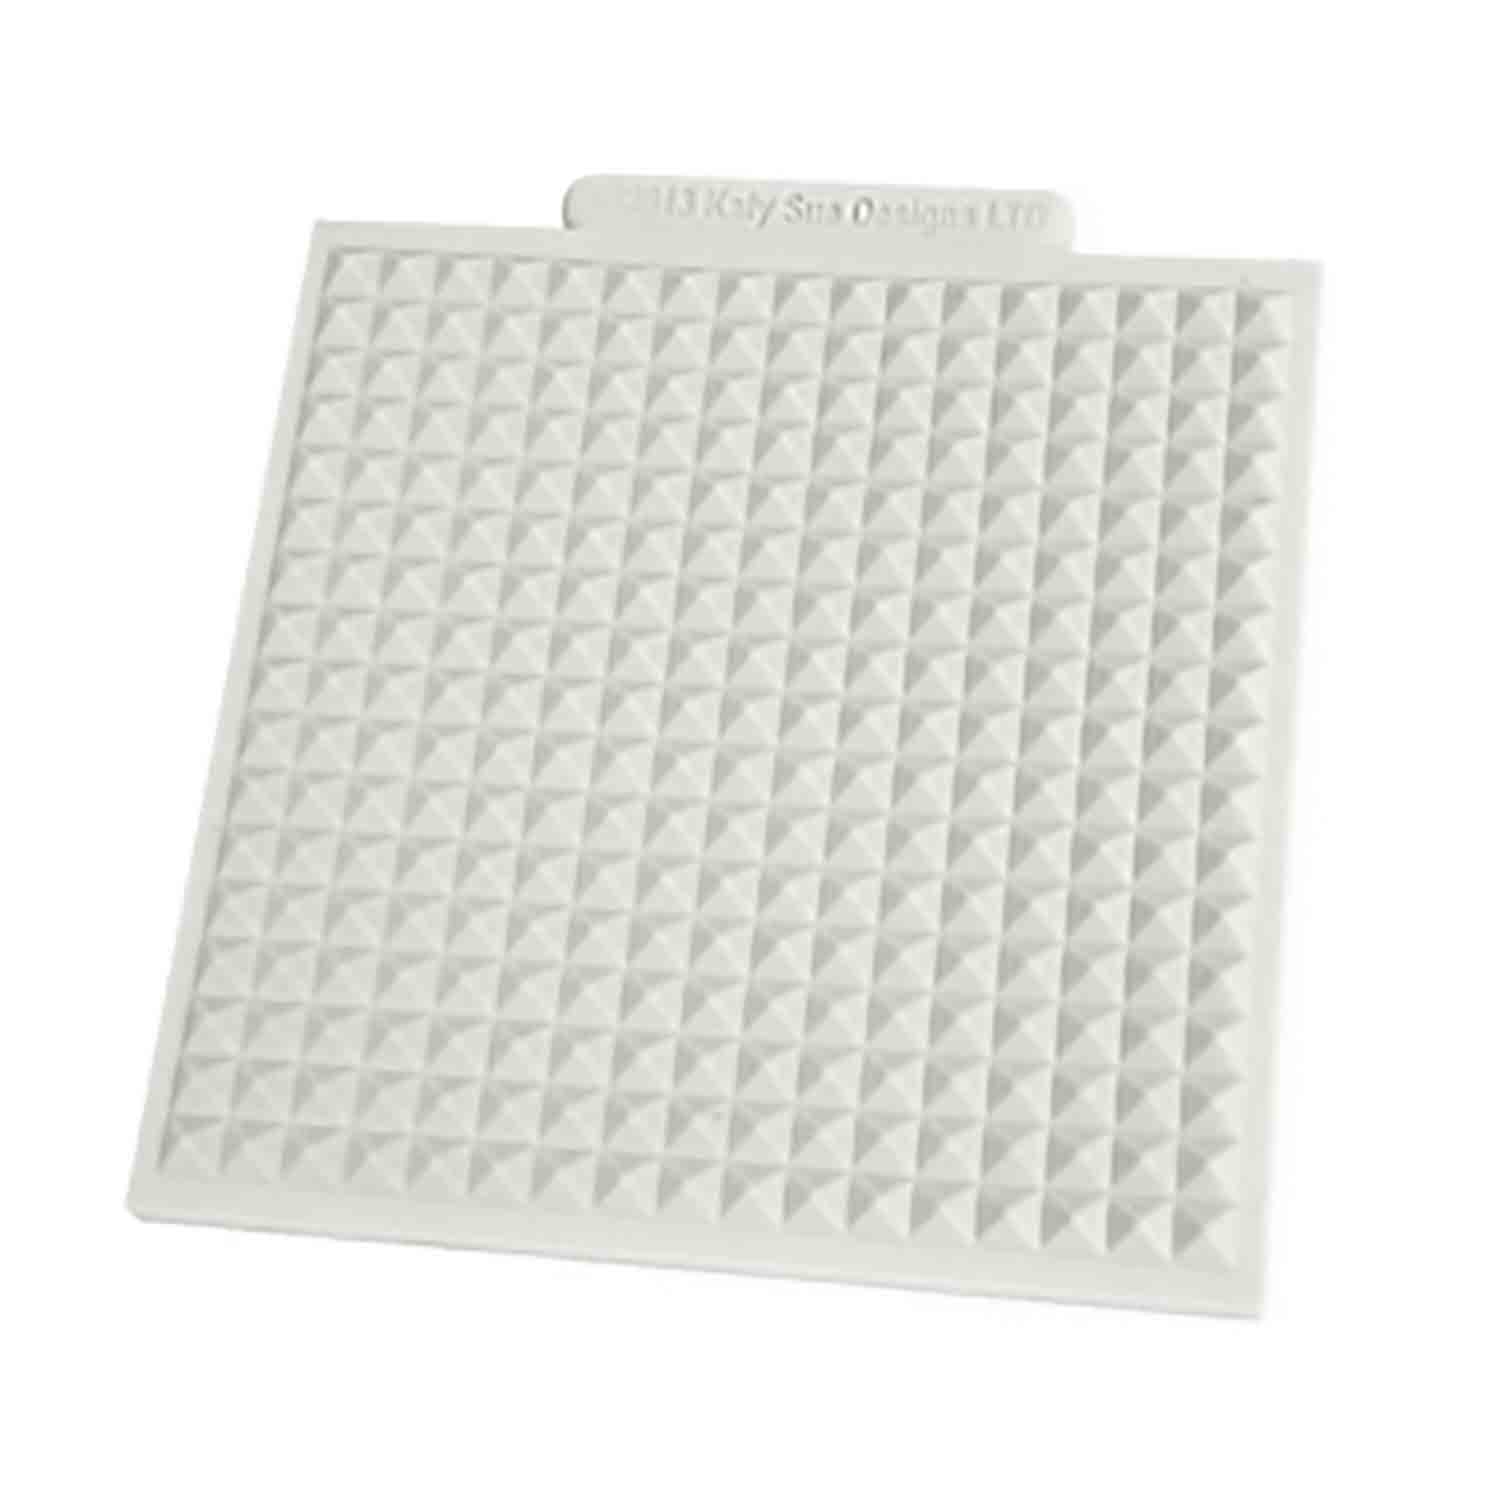 Waffle Silicone Design Mat